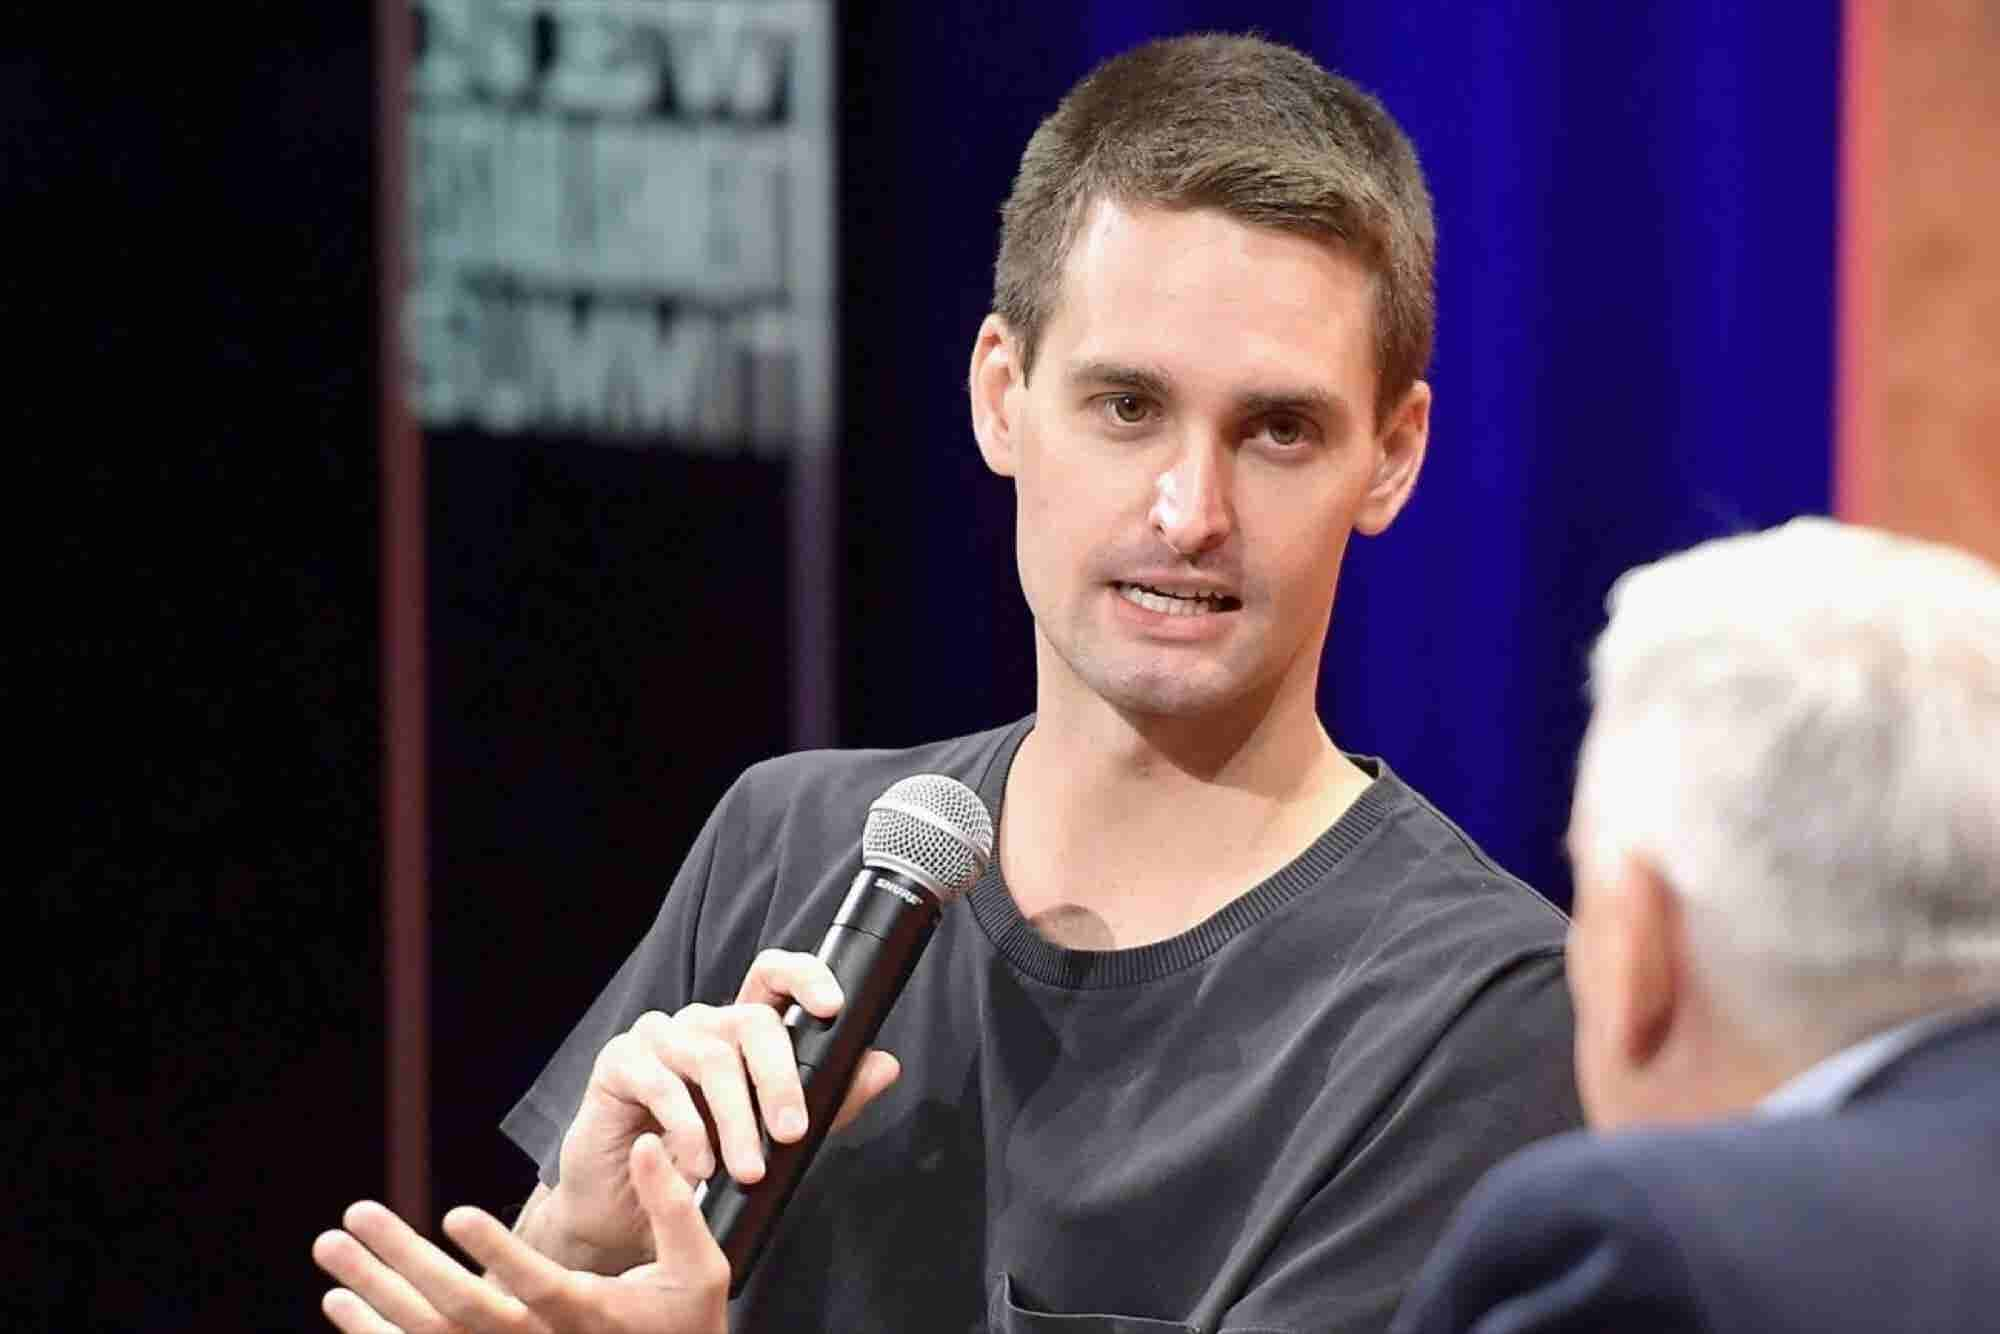 9 Inspiring Quotes from the 27-Year-Old Billionaire and Snap Co-Founder Evan Spiegel